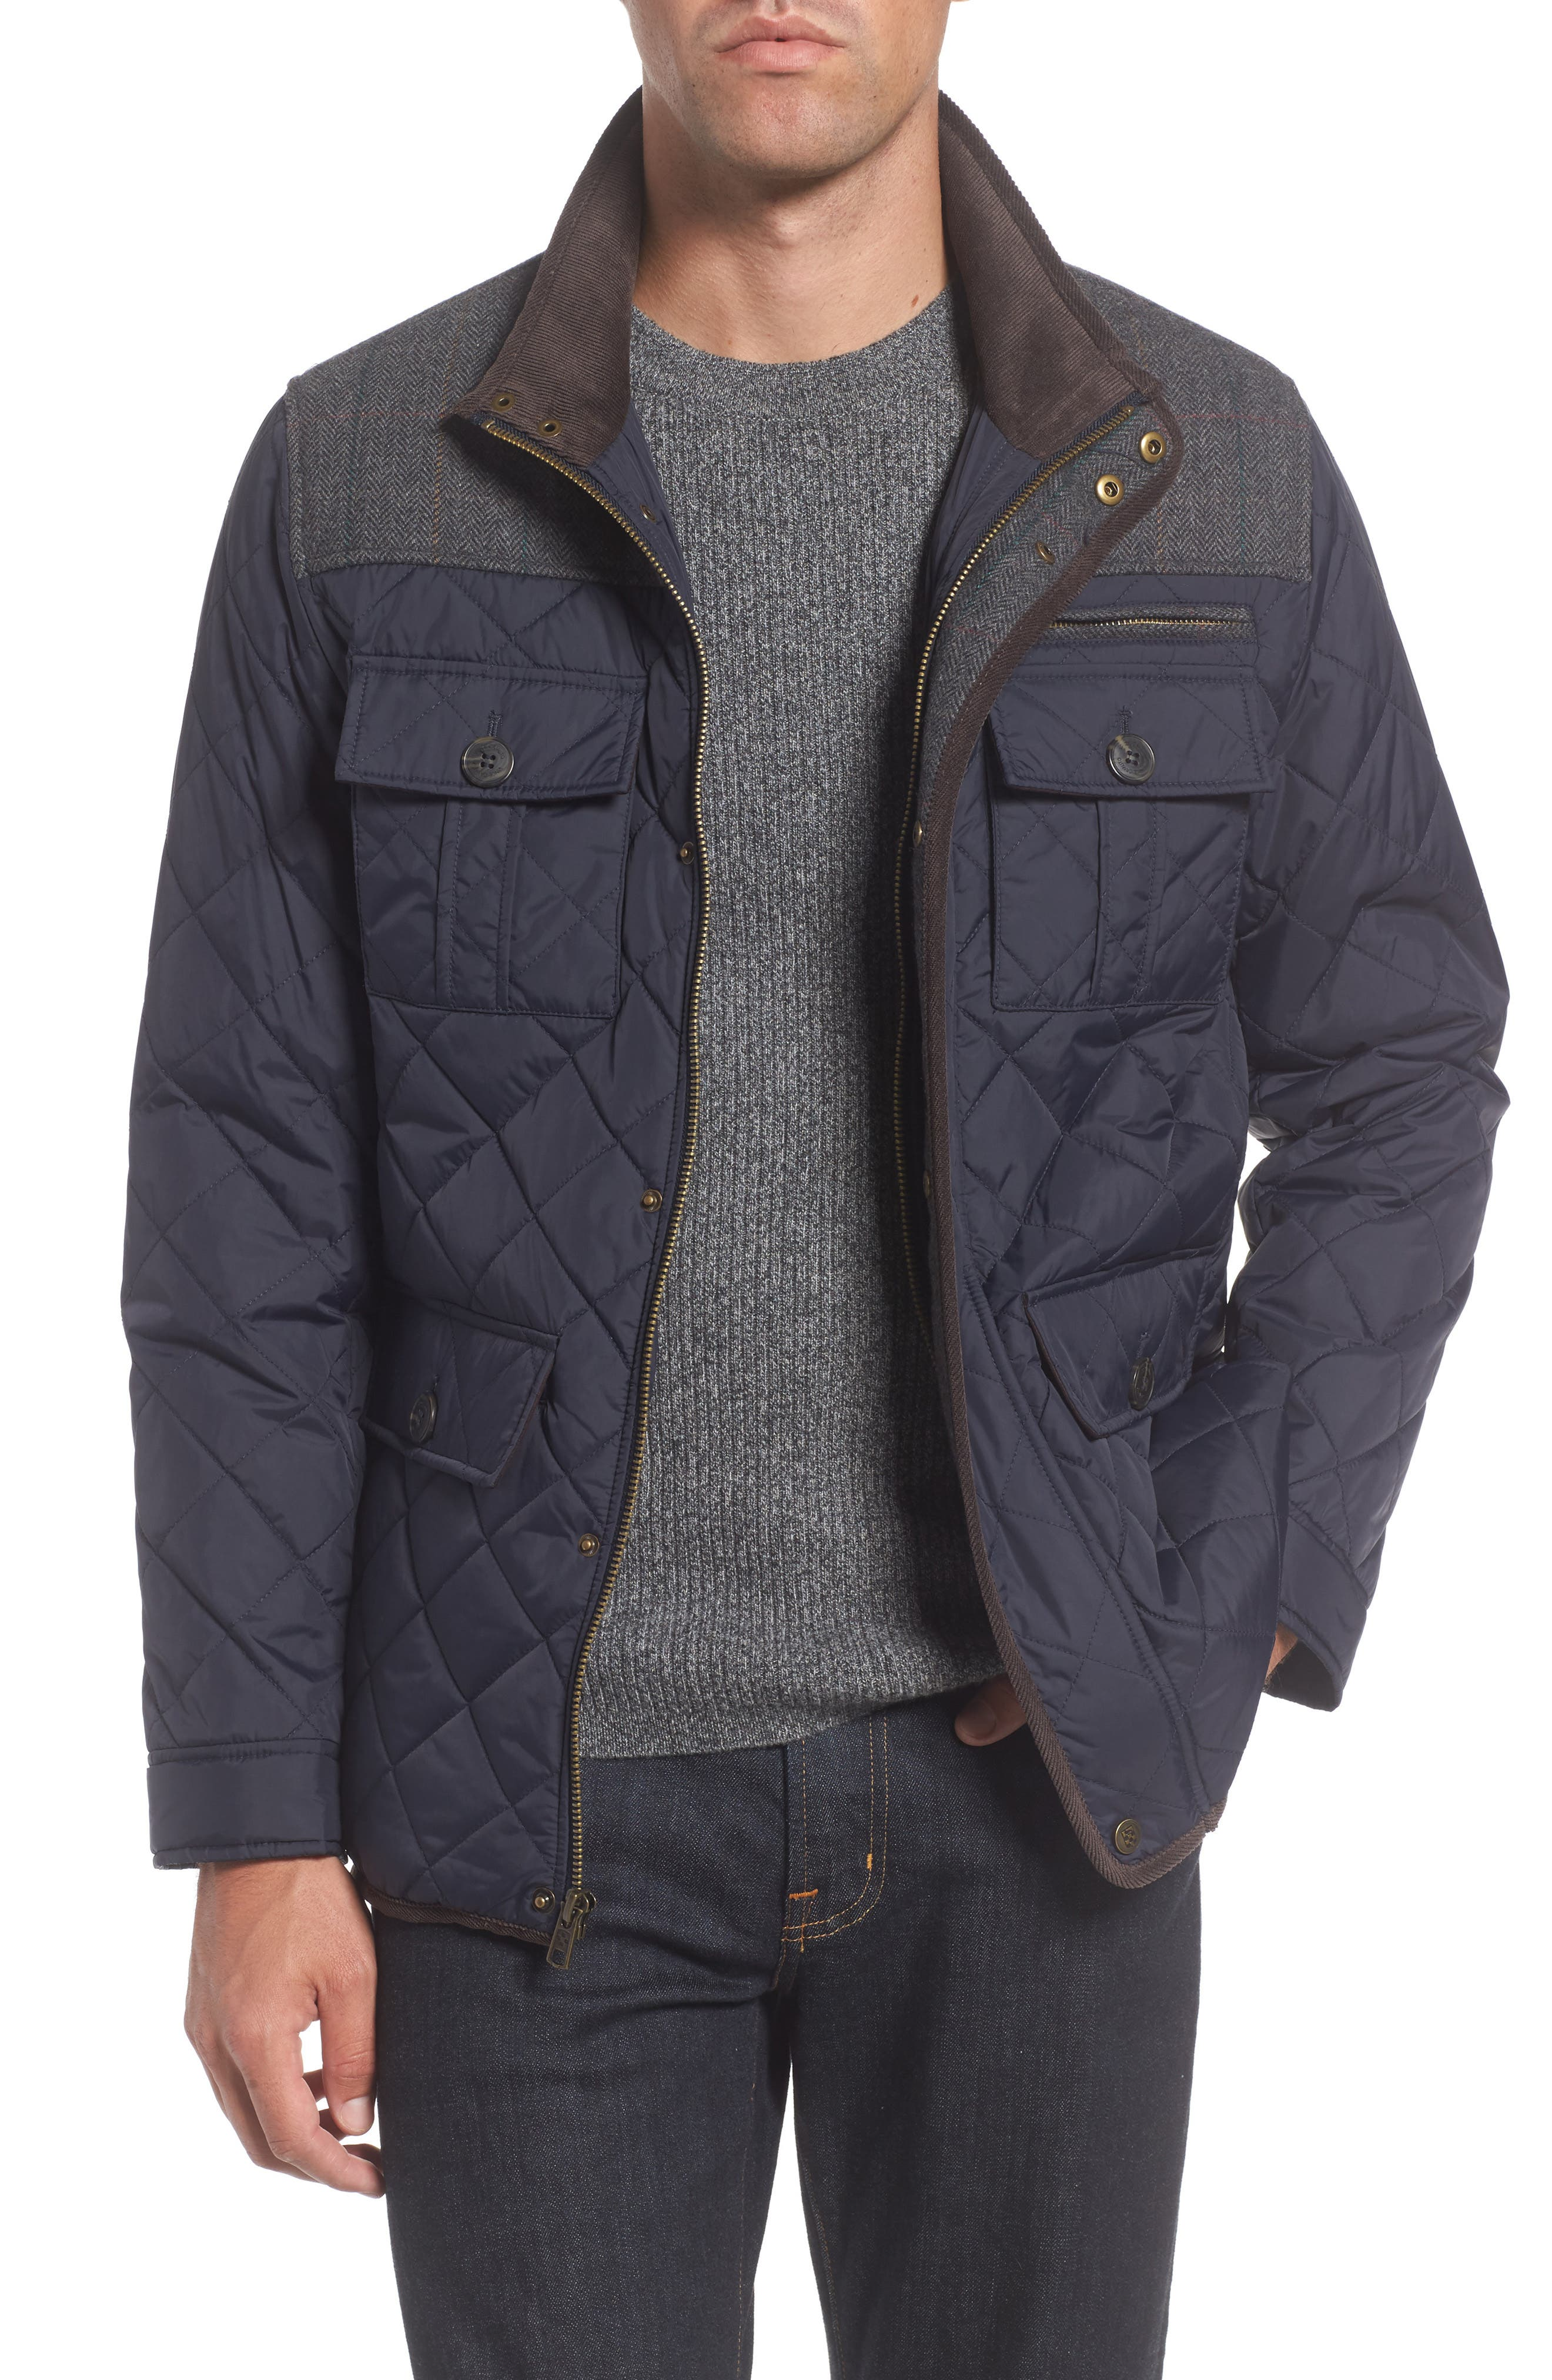 VINCE CAMUTO, Diamond Quilted Full Zip Jacket, Alternate thumbnail 2, color, NAVY